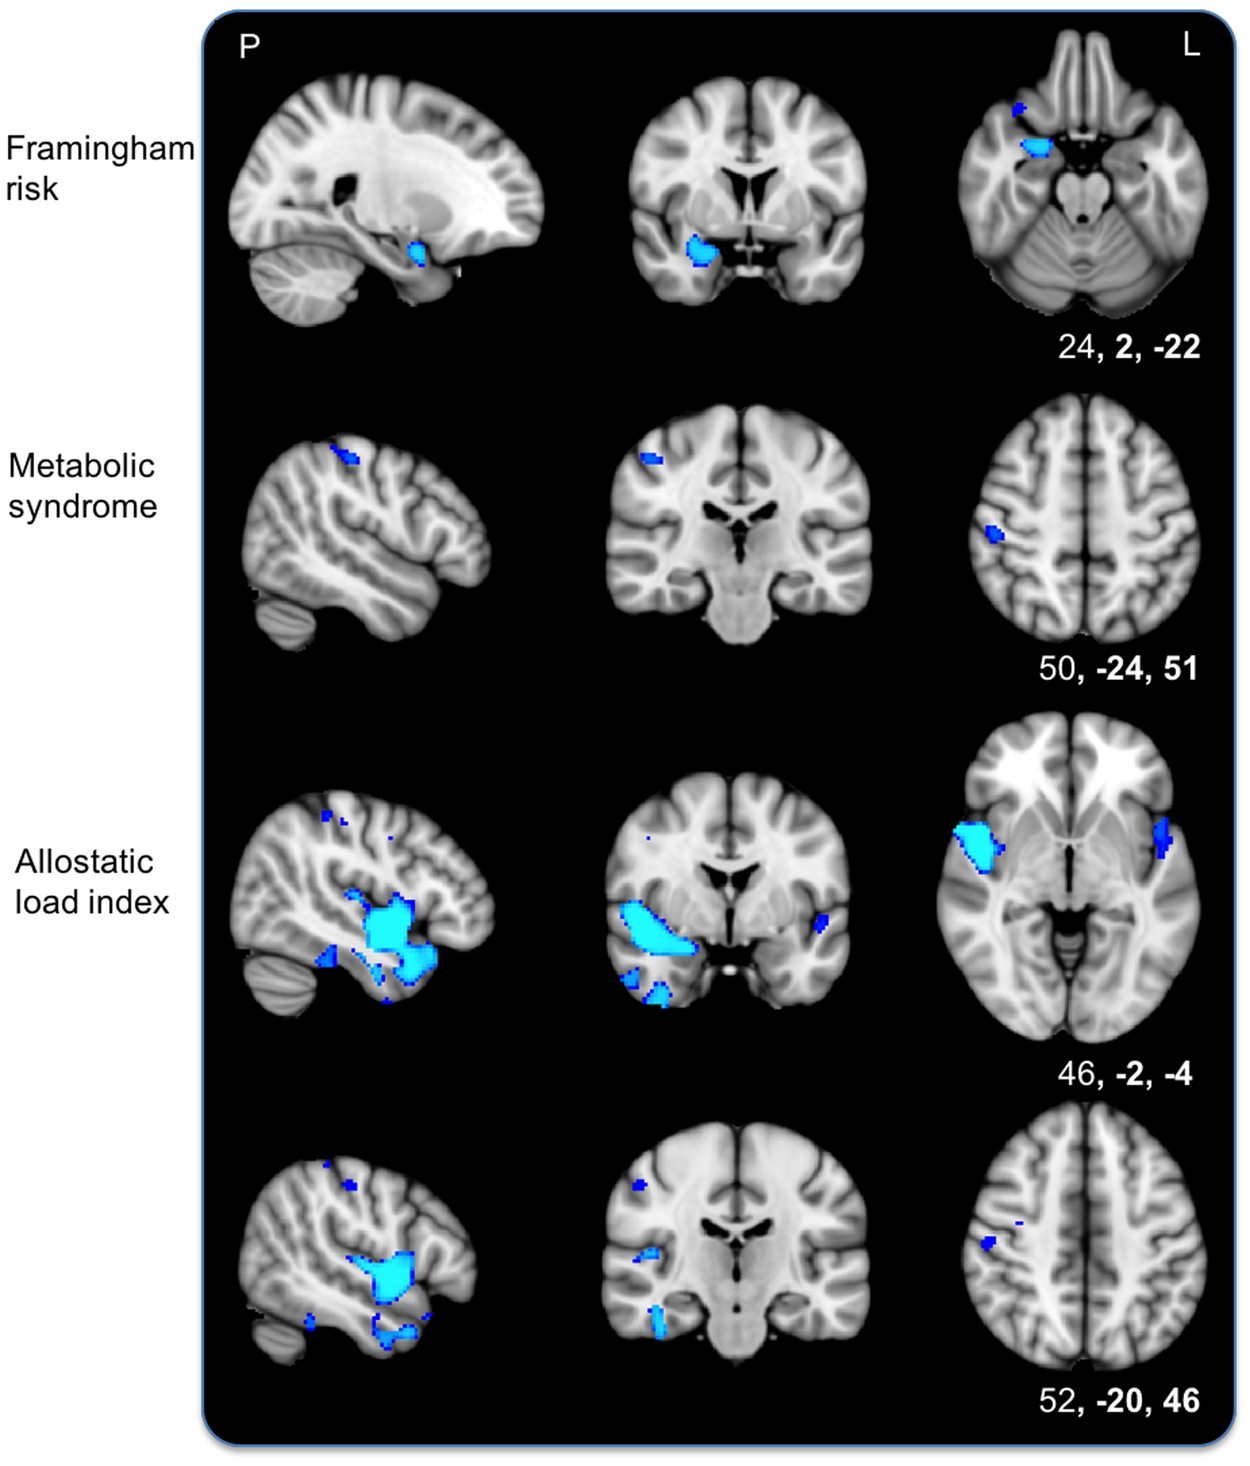 Allostatic load as a predictor of grey matter volume and